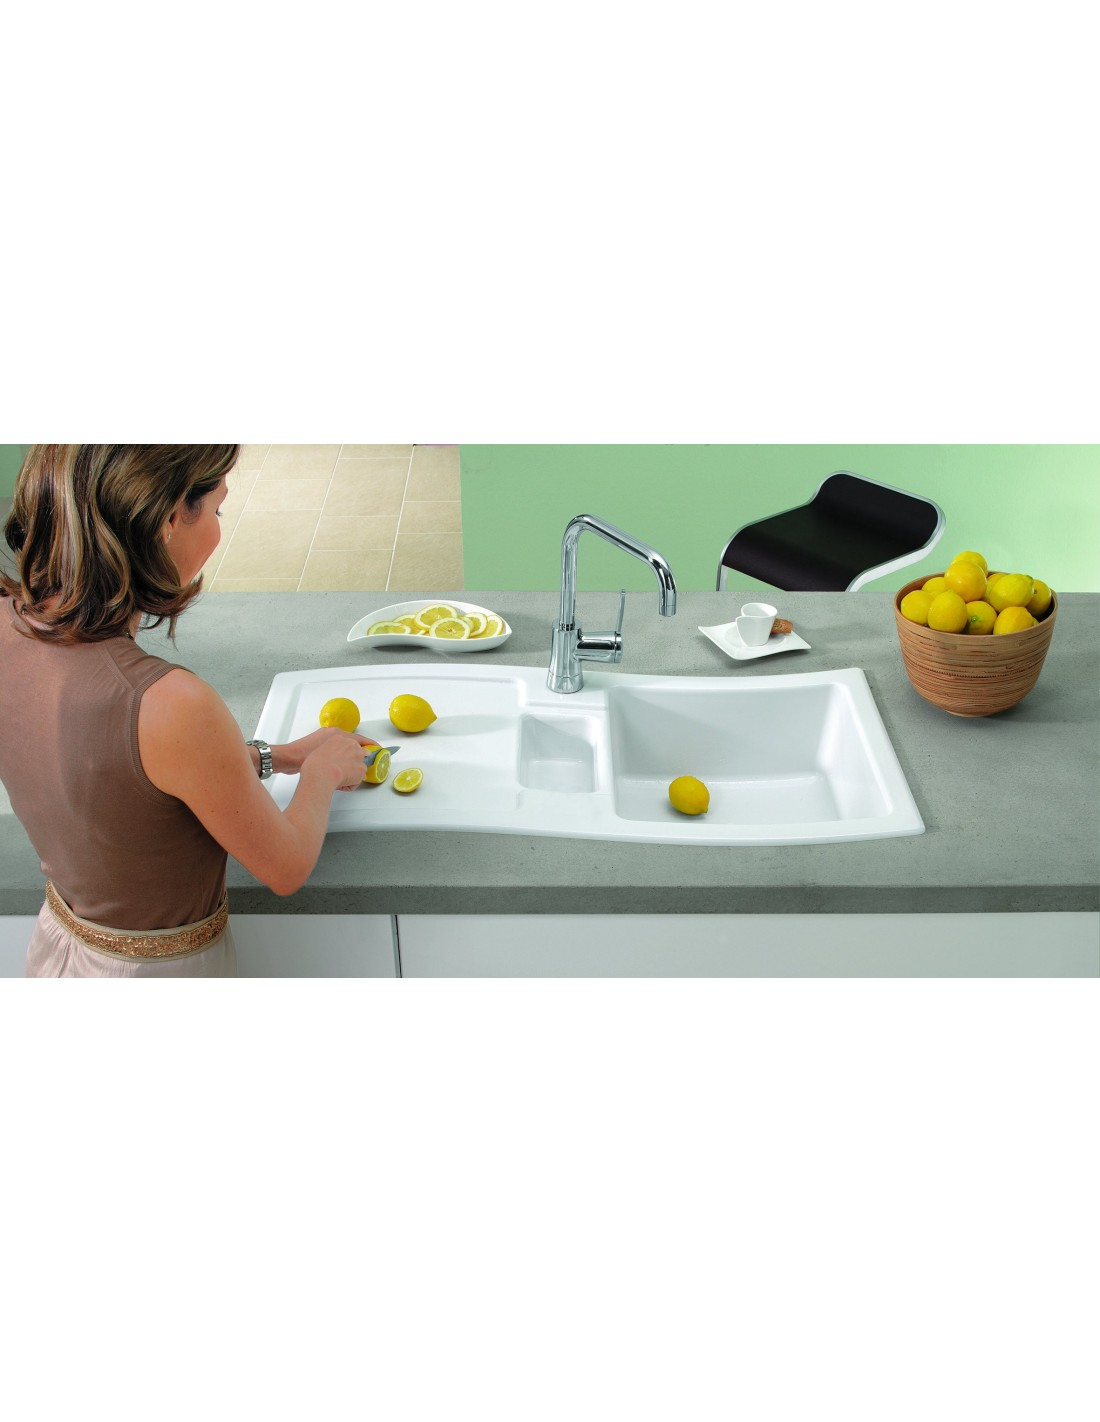 new wave ceramic sink by villeroy boch 1 5 bowl drainer 671601. Black Bedroom Furniture Sets. Home Design Ideas